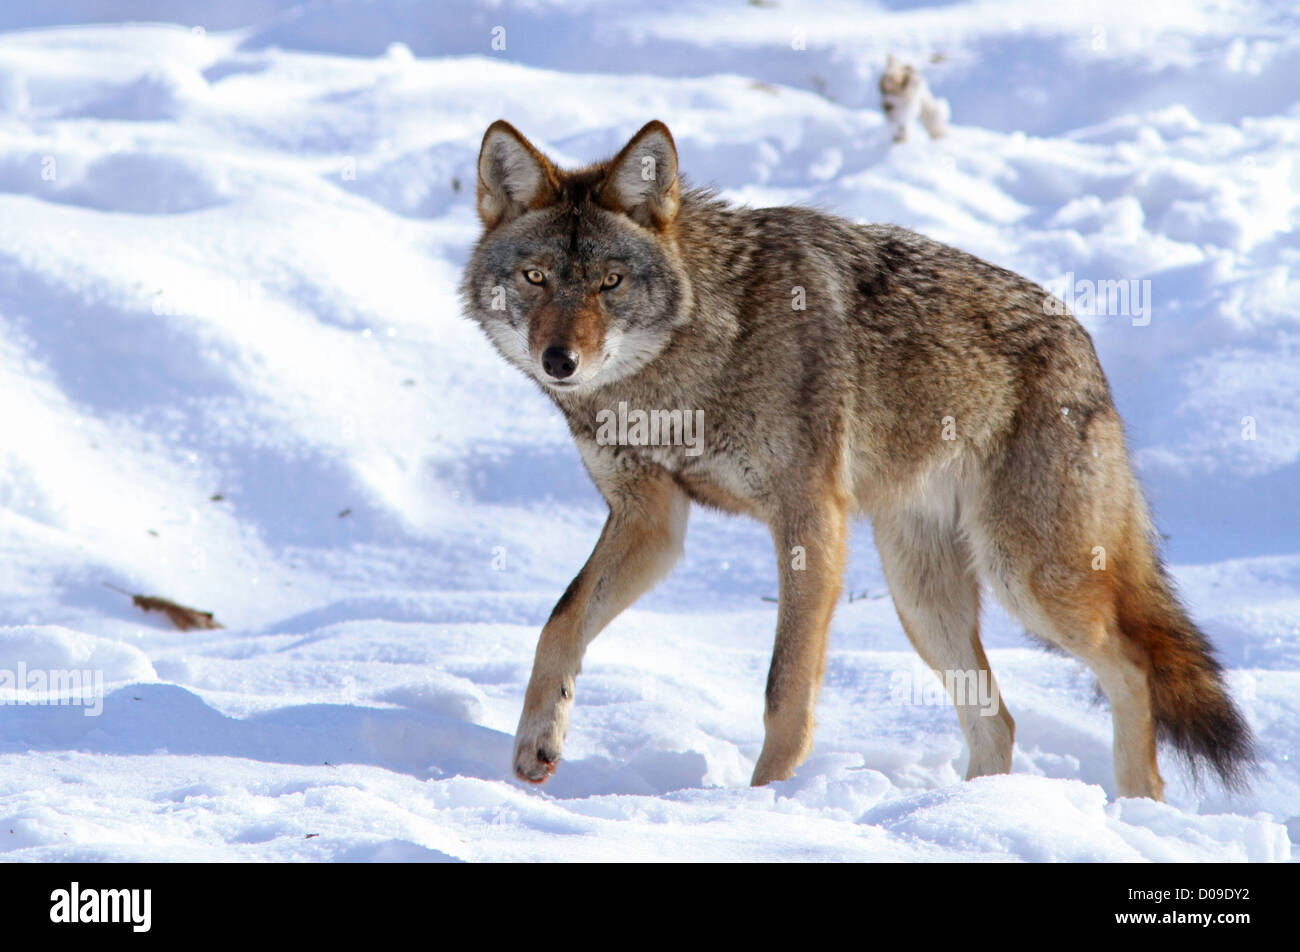 Big male coyote in winter. - Stock Image